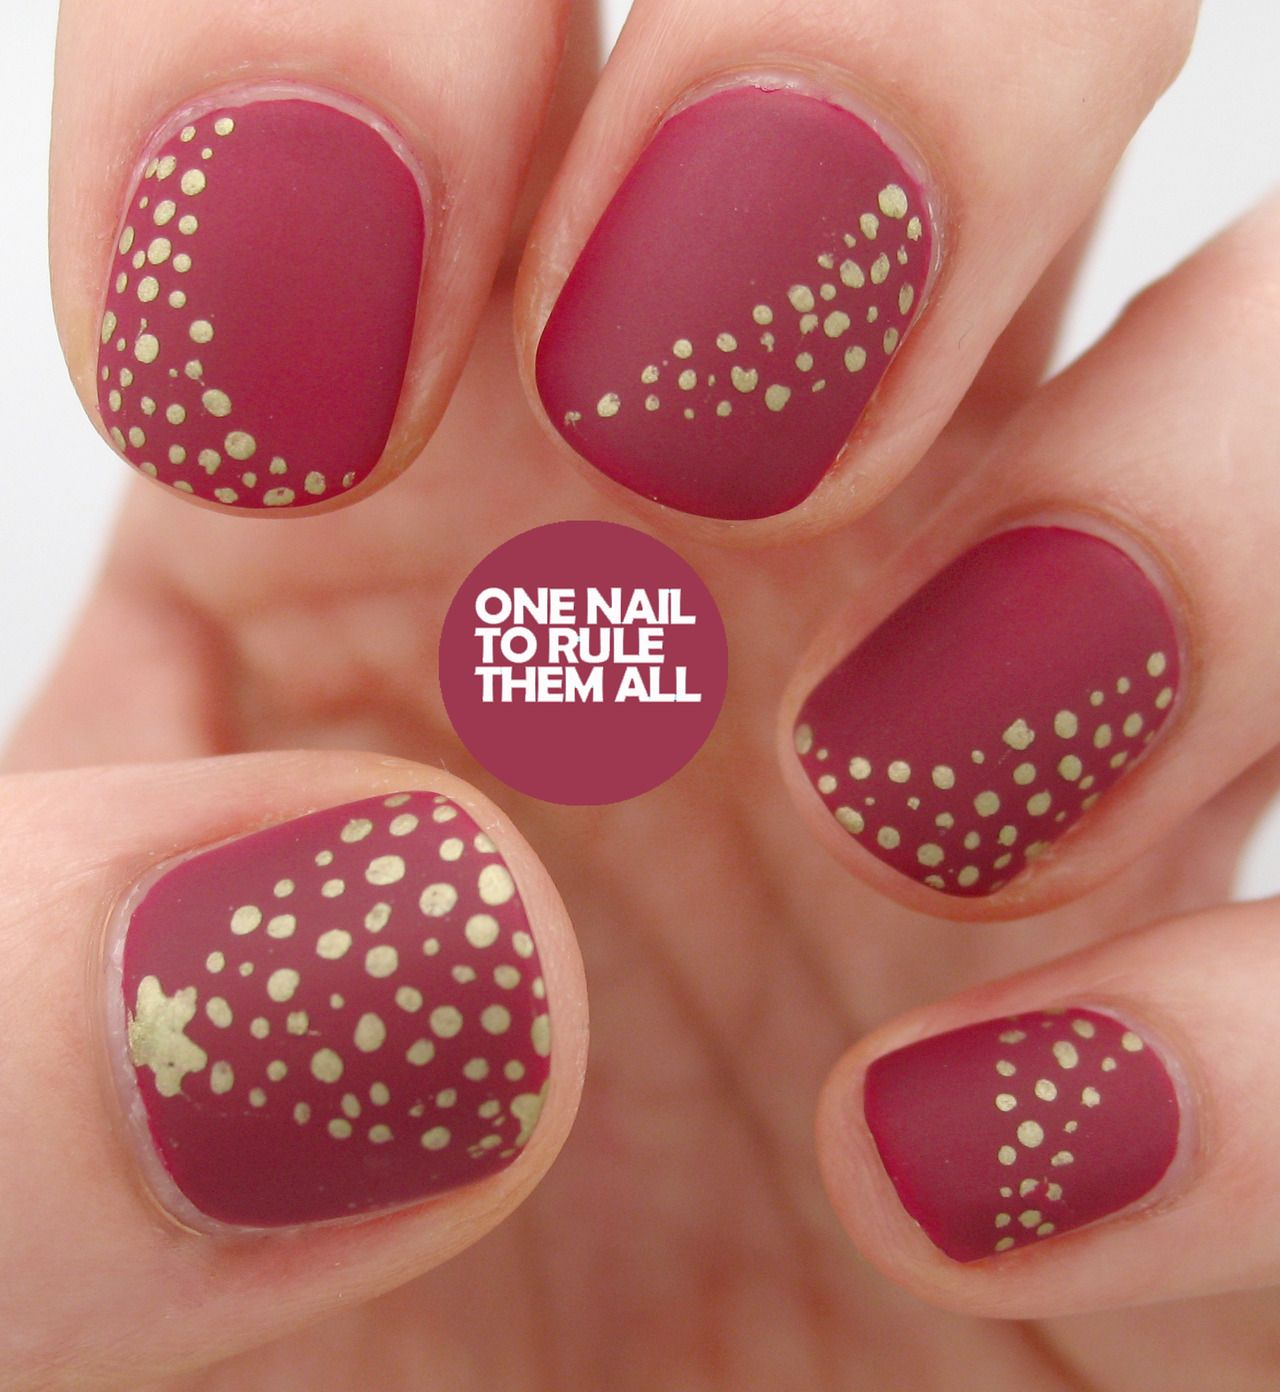 1000 Images About Christmas Nail Art On Pinterest Penguin Nail Art  Christmas Nail Designs And Christmas Nail Art - Image Viawhatever You Do Dont Forget To Bring Out The Glitz And